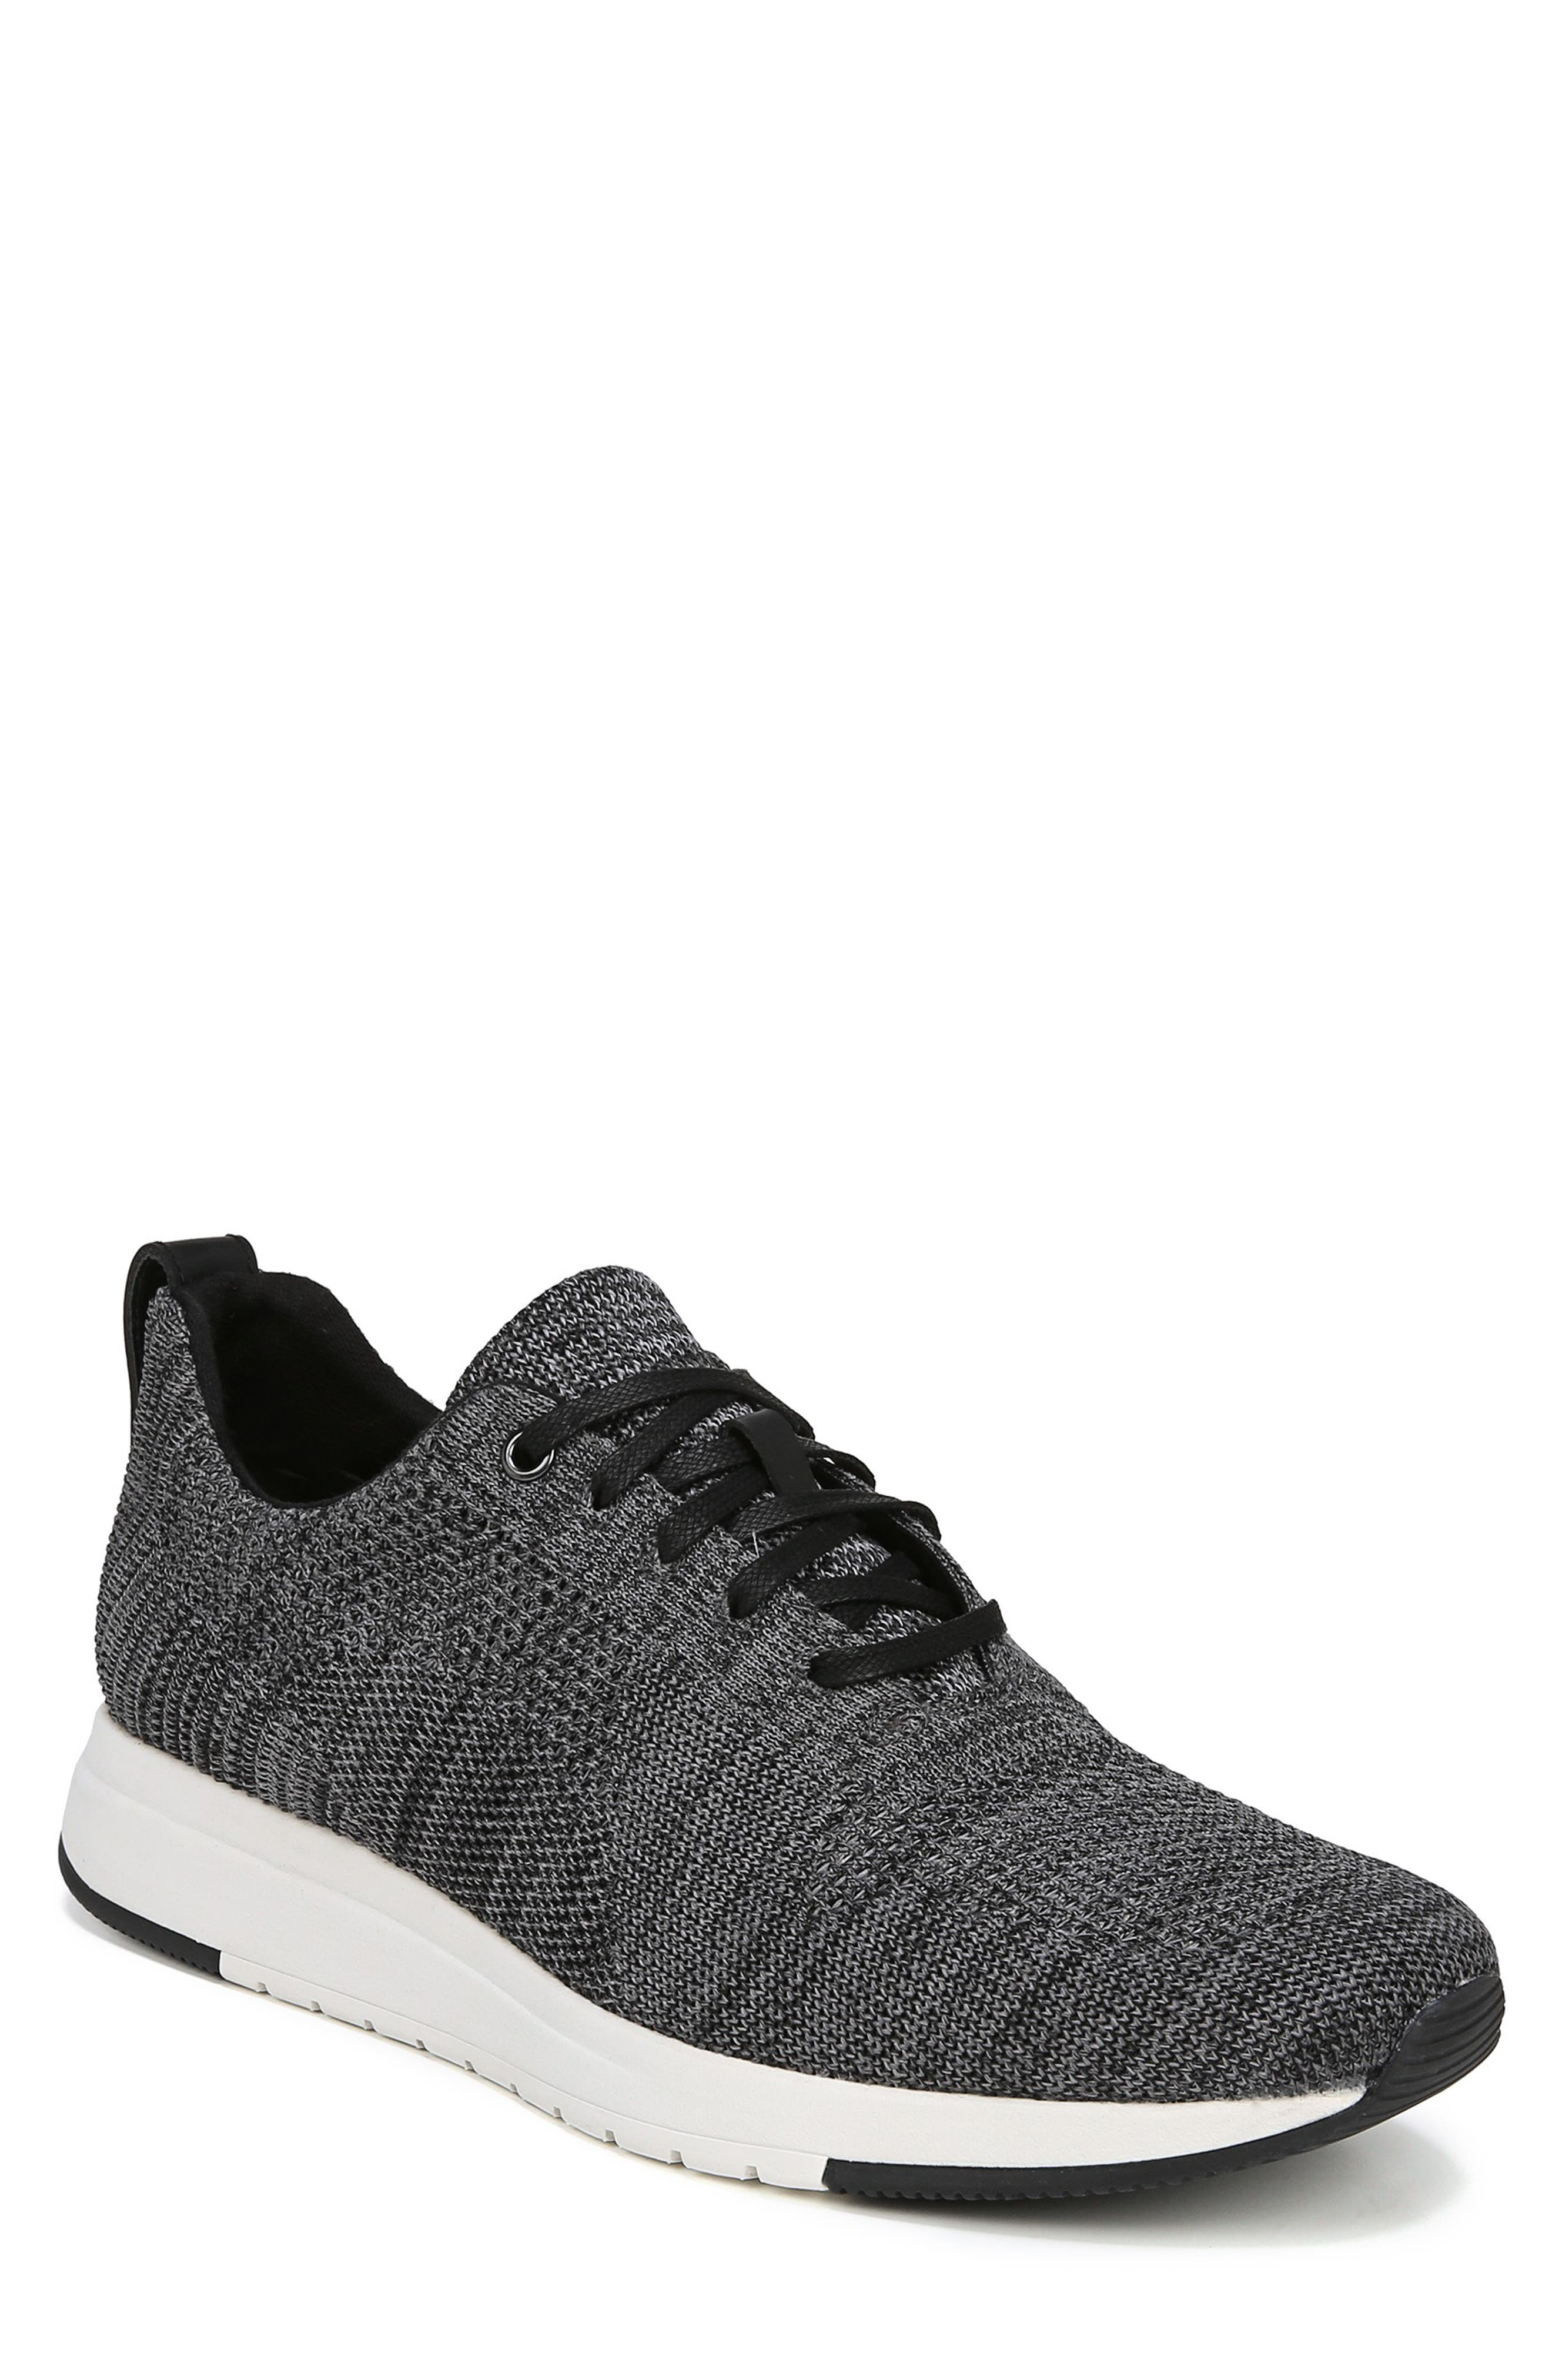 VINCE Palo Knit Sneaker, Main, color, MARL GREY/ BLACK